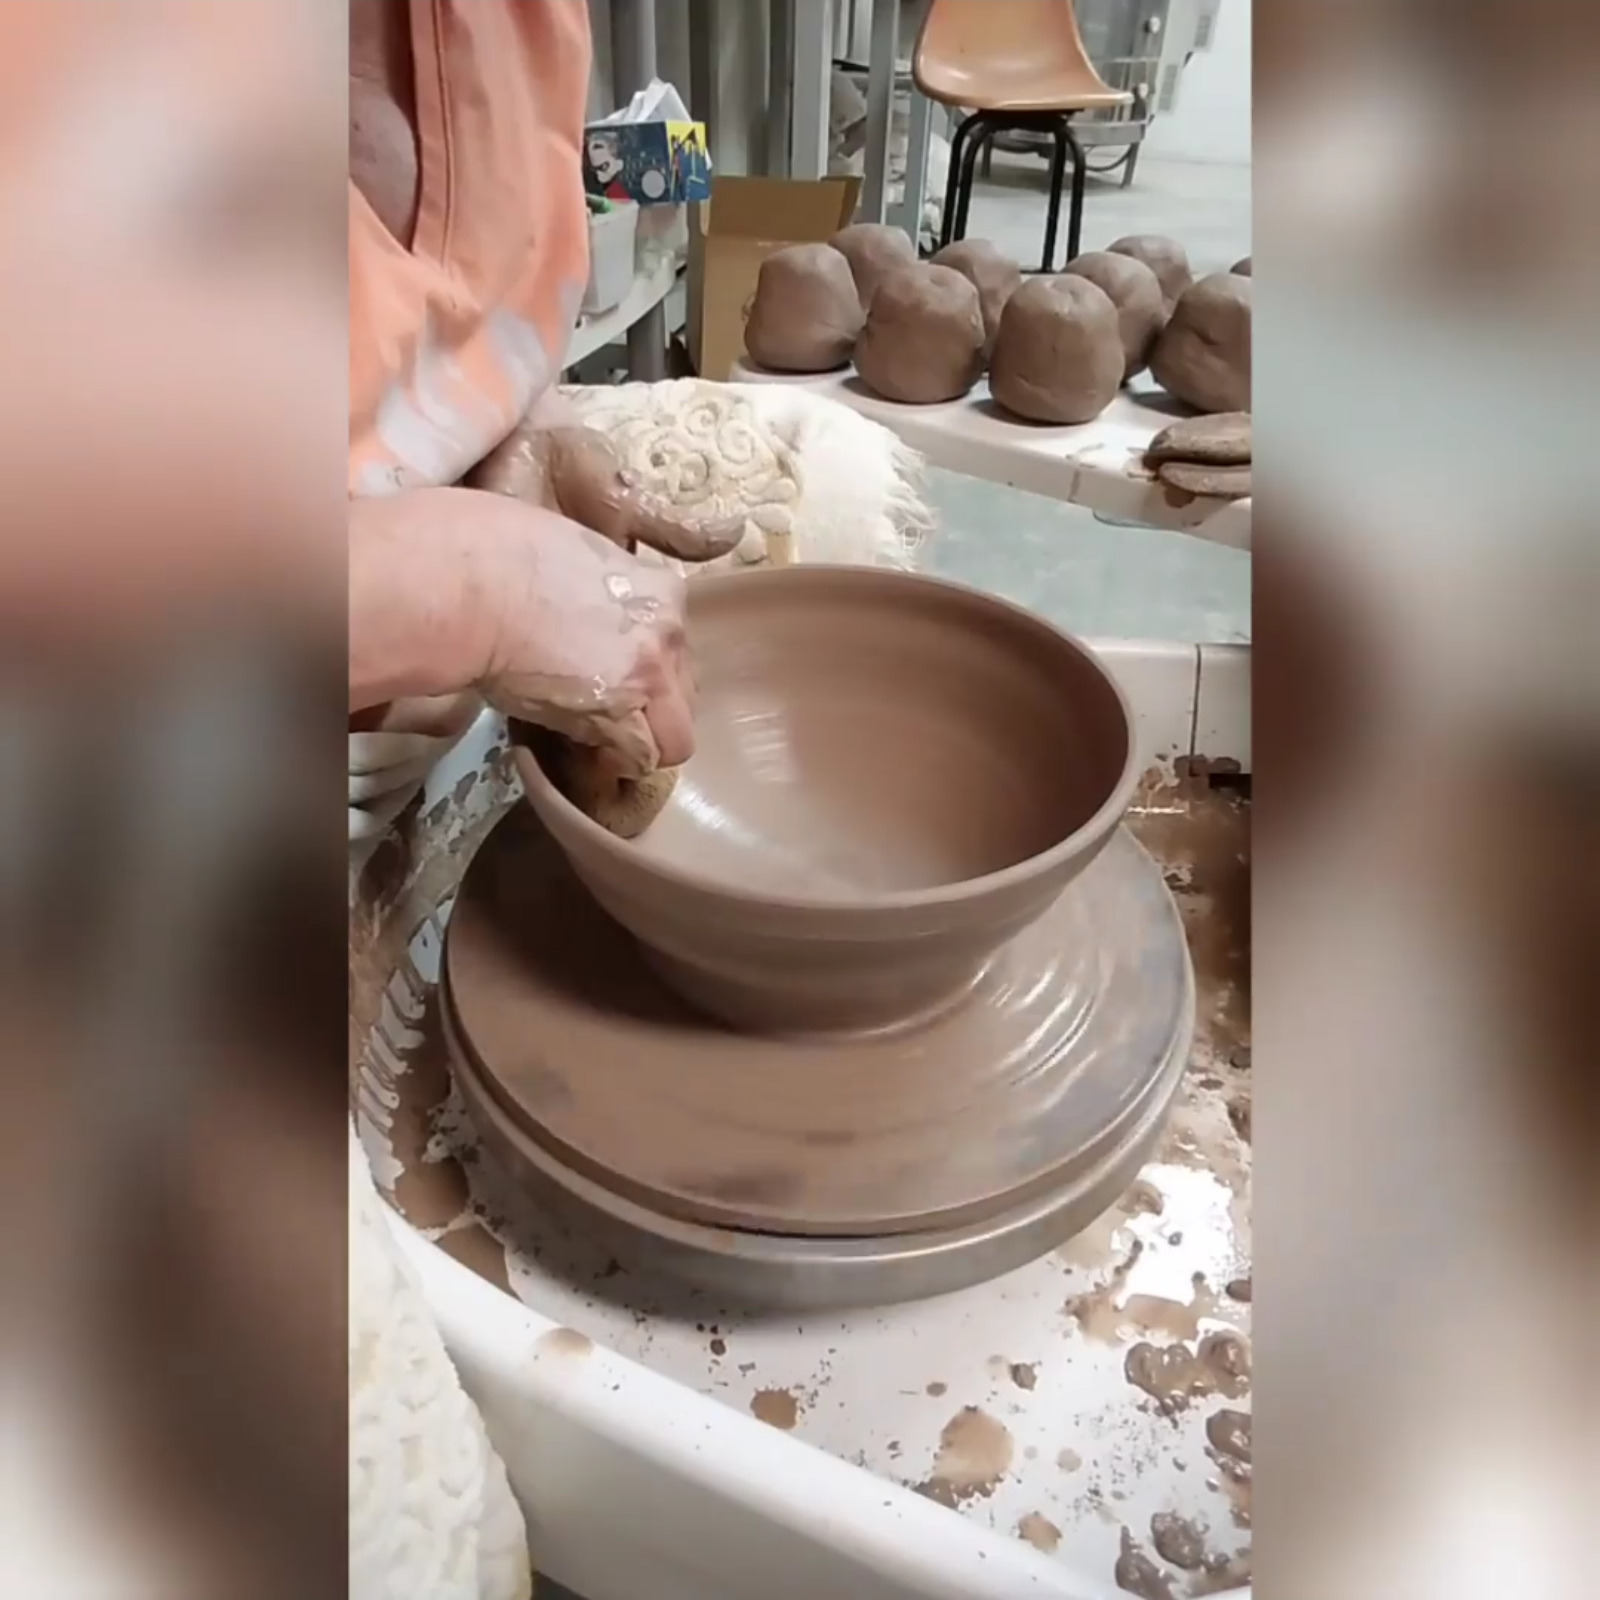 Blue Goose Pottery Studio